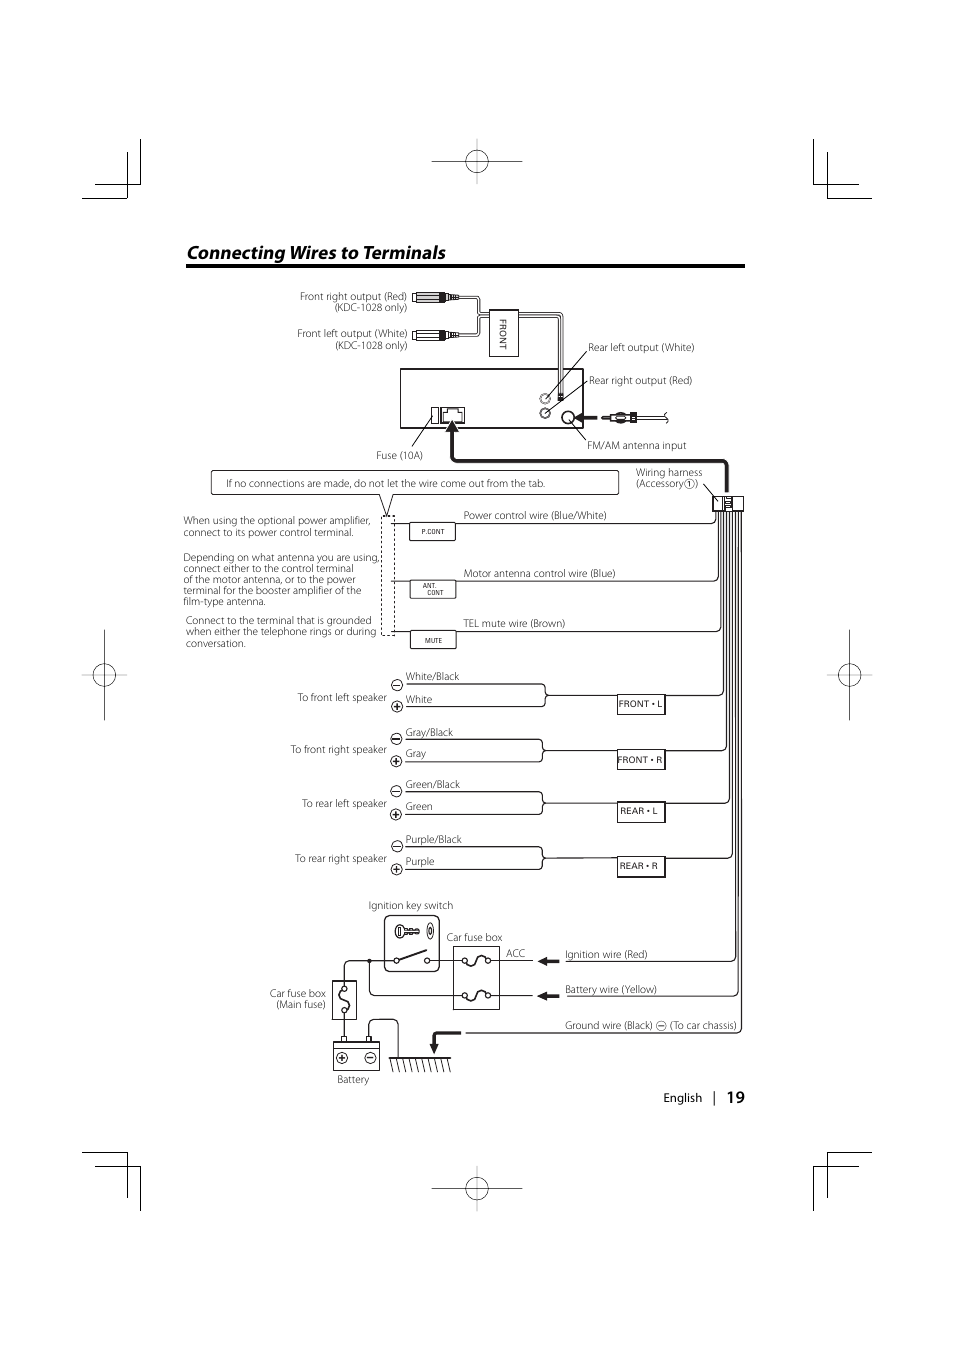 kenwood kdc 255u wiring diagram kenwood image kenwood kdc 128 wiring harness dodge magnum wiring schematics b on kenwood kdc 255u wiring diagram